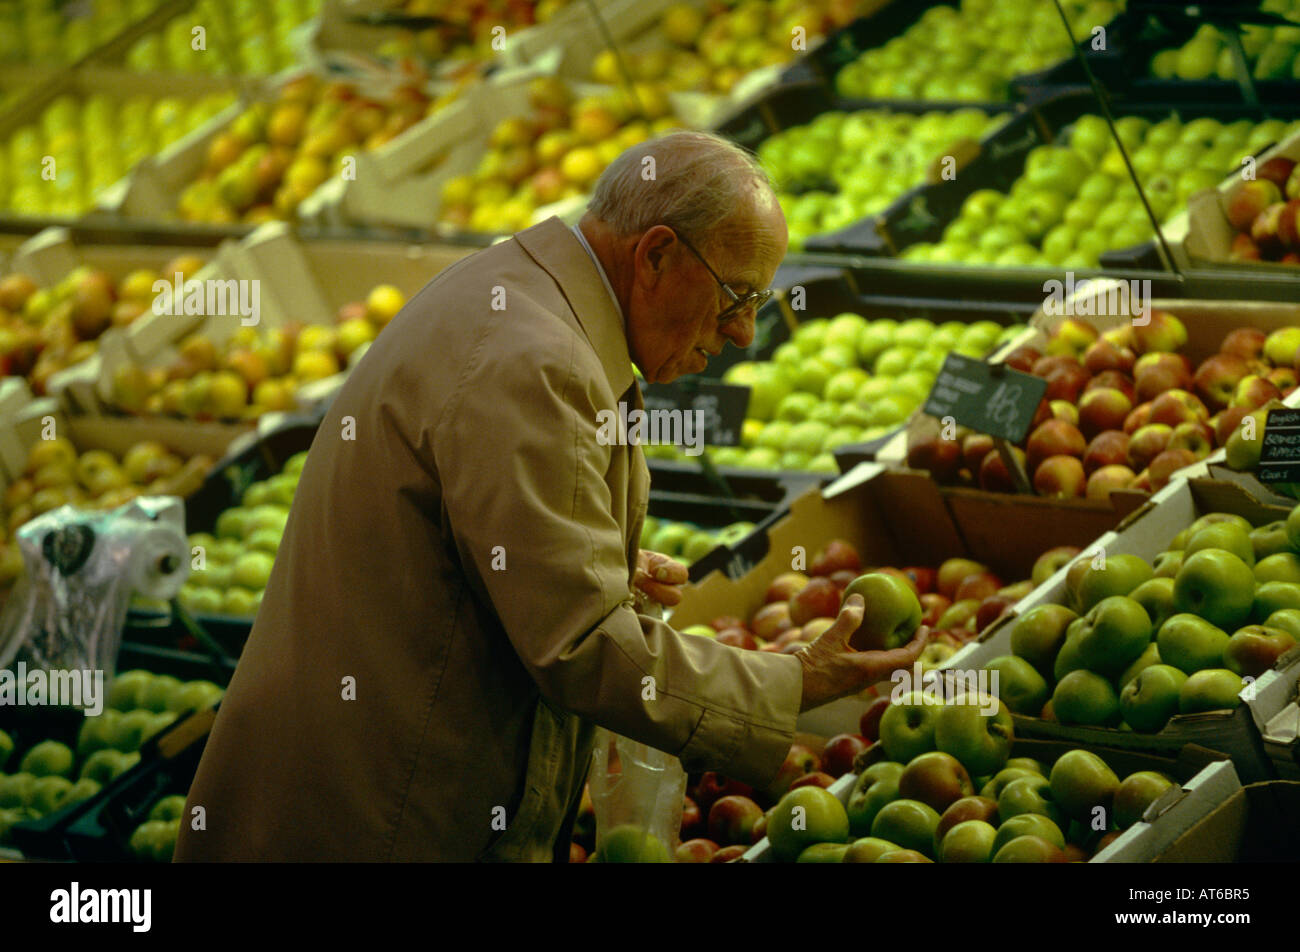 A man looking at apples in the fruit and vegetable section of an ASDA supermarket in Dewsbury,Yorkshire, England - Stock Image